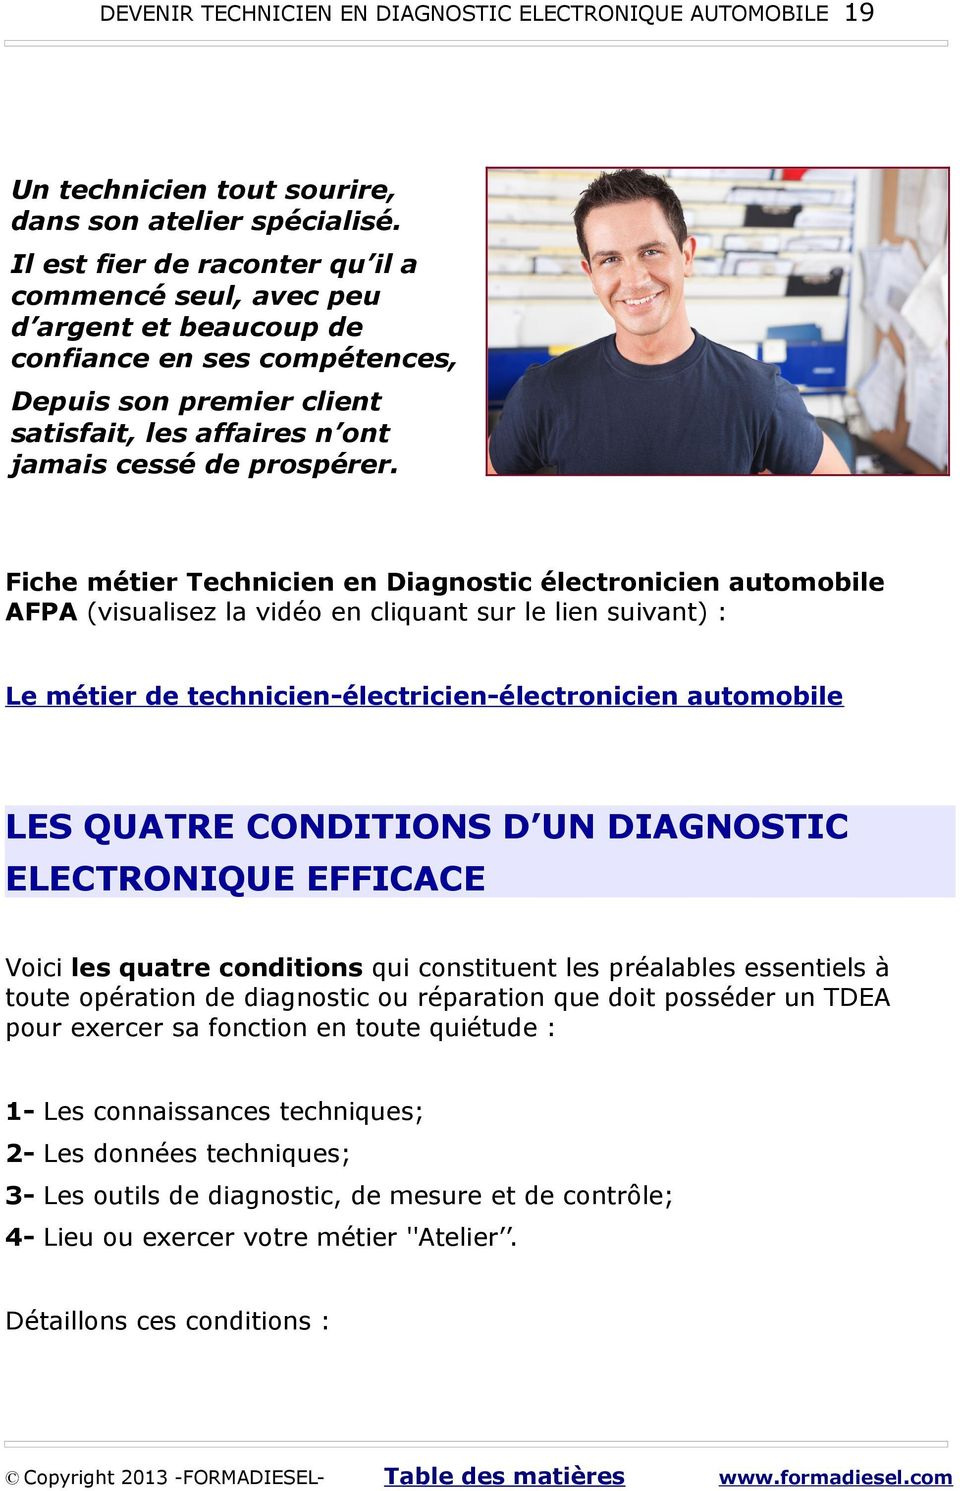 devenir technicien en diagnostic electronique automobile